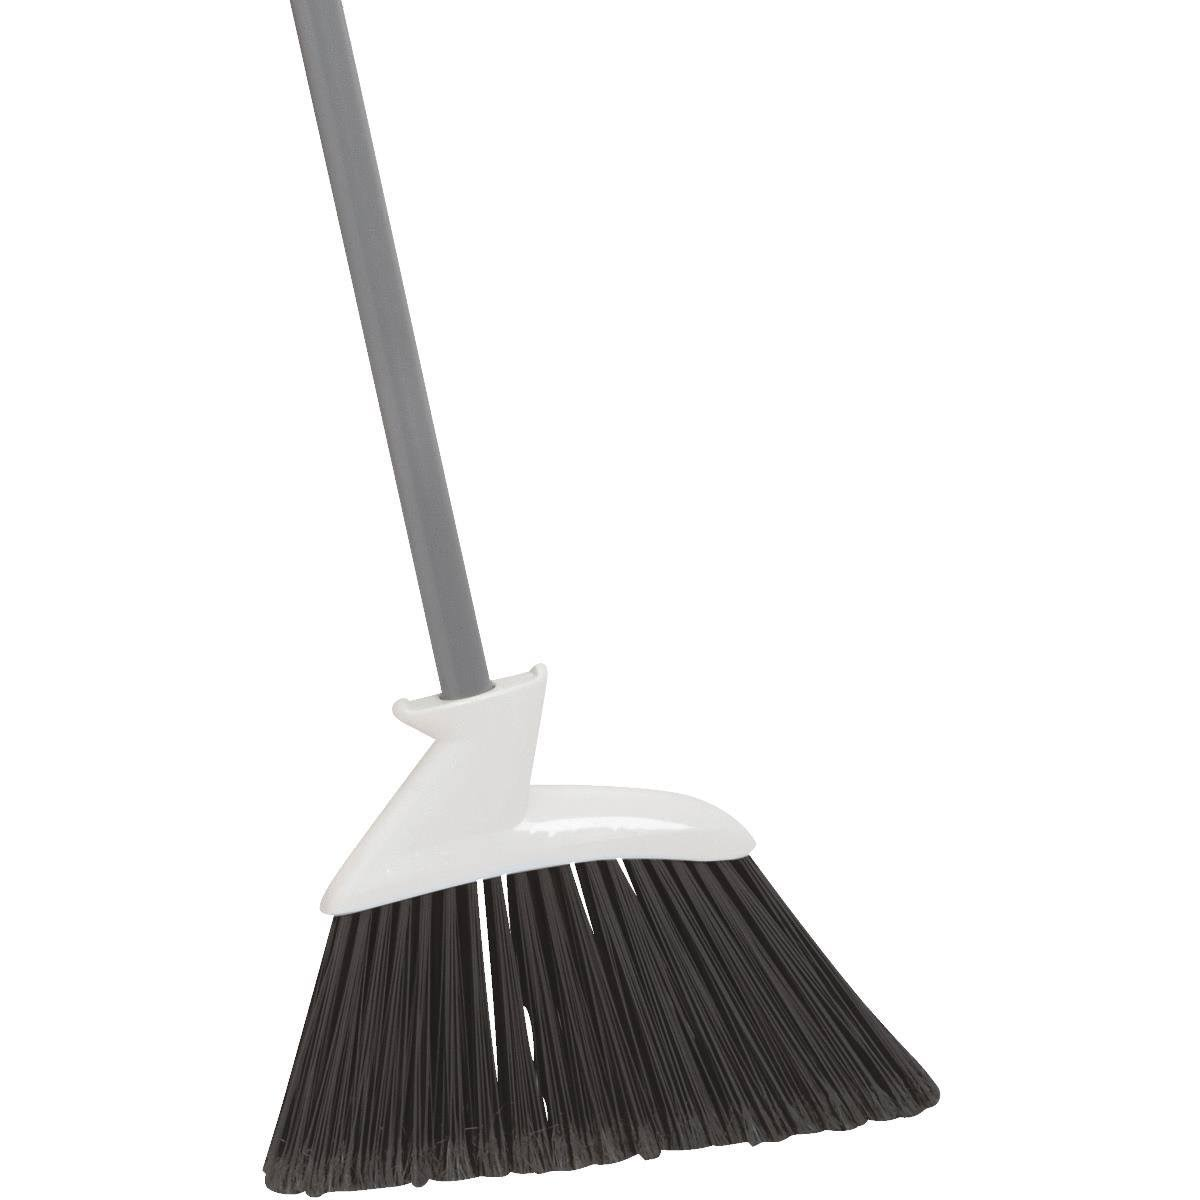 The Libman Company Extra Wide Angle Broom